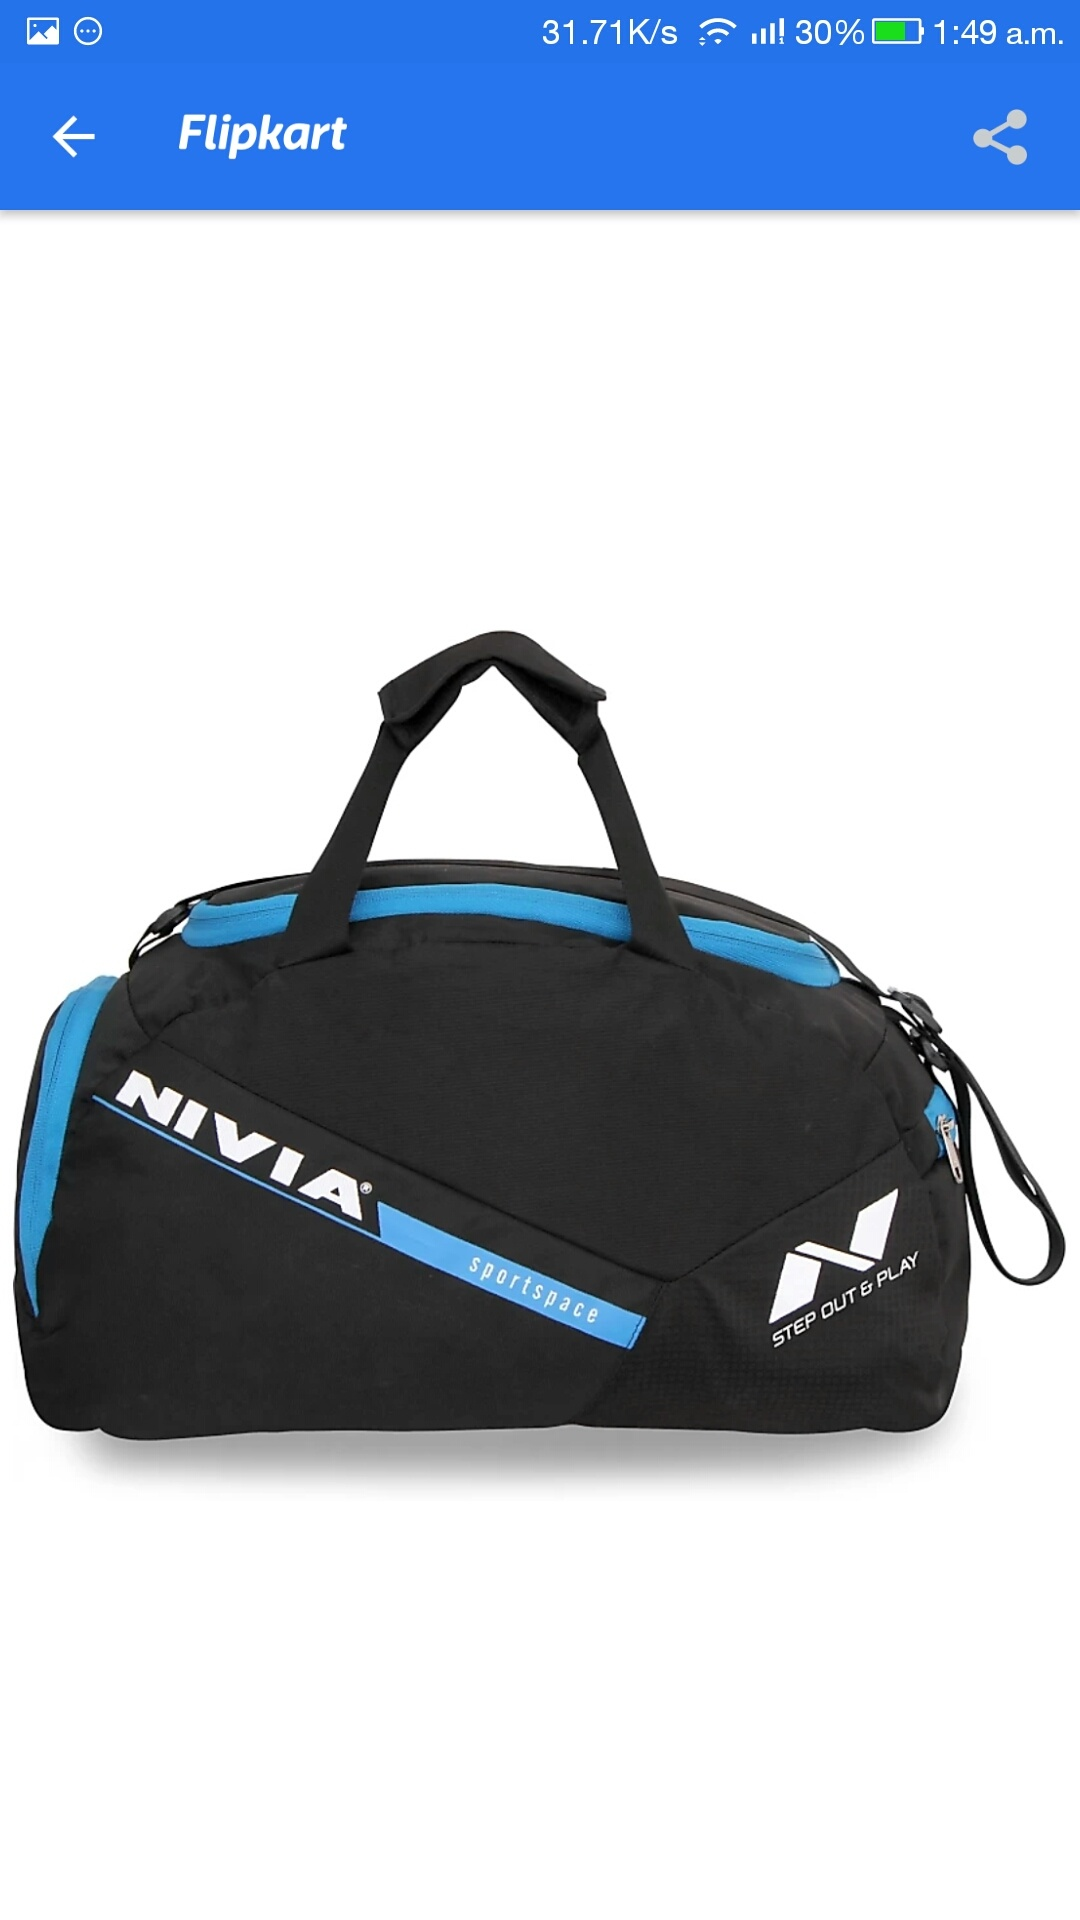 3201b41419 Nivia Sports Pace 01 Multi-Purpose Bag - Buy Nivia Sports Pace 01  Multi-Purpose Bag Online at Best Prices in India - Gym